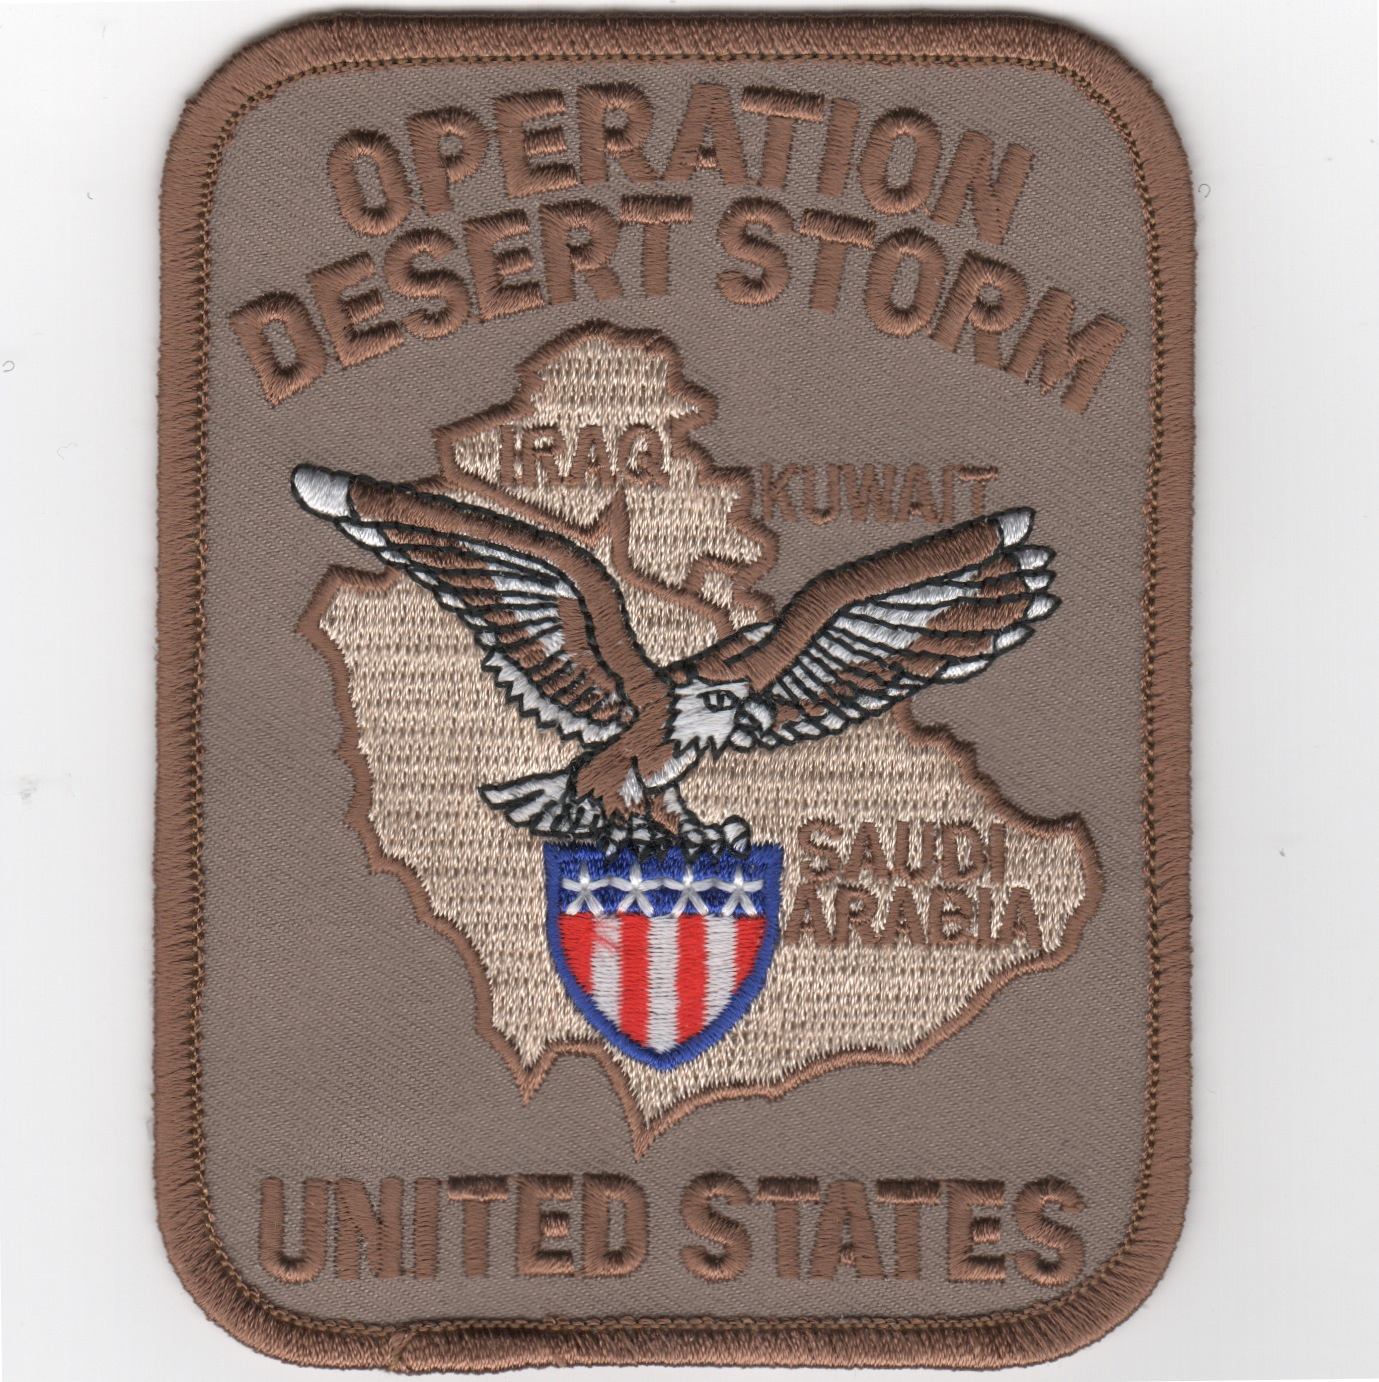 Operation DESERT STORM Patch (Rect/Des)